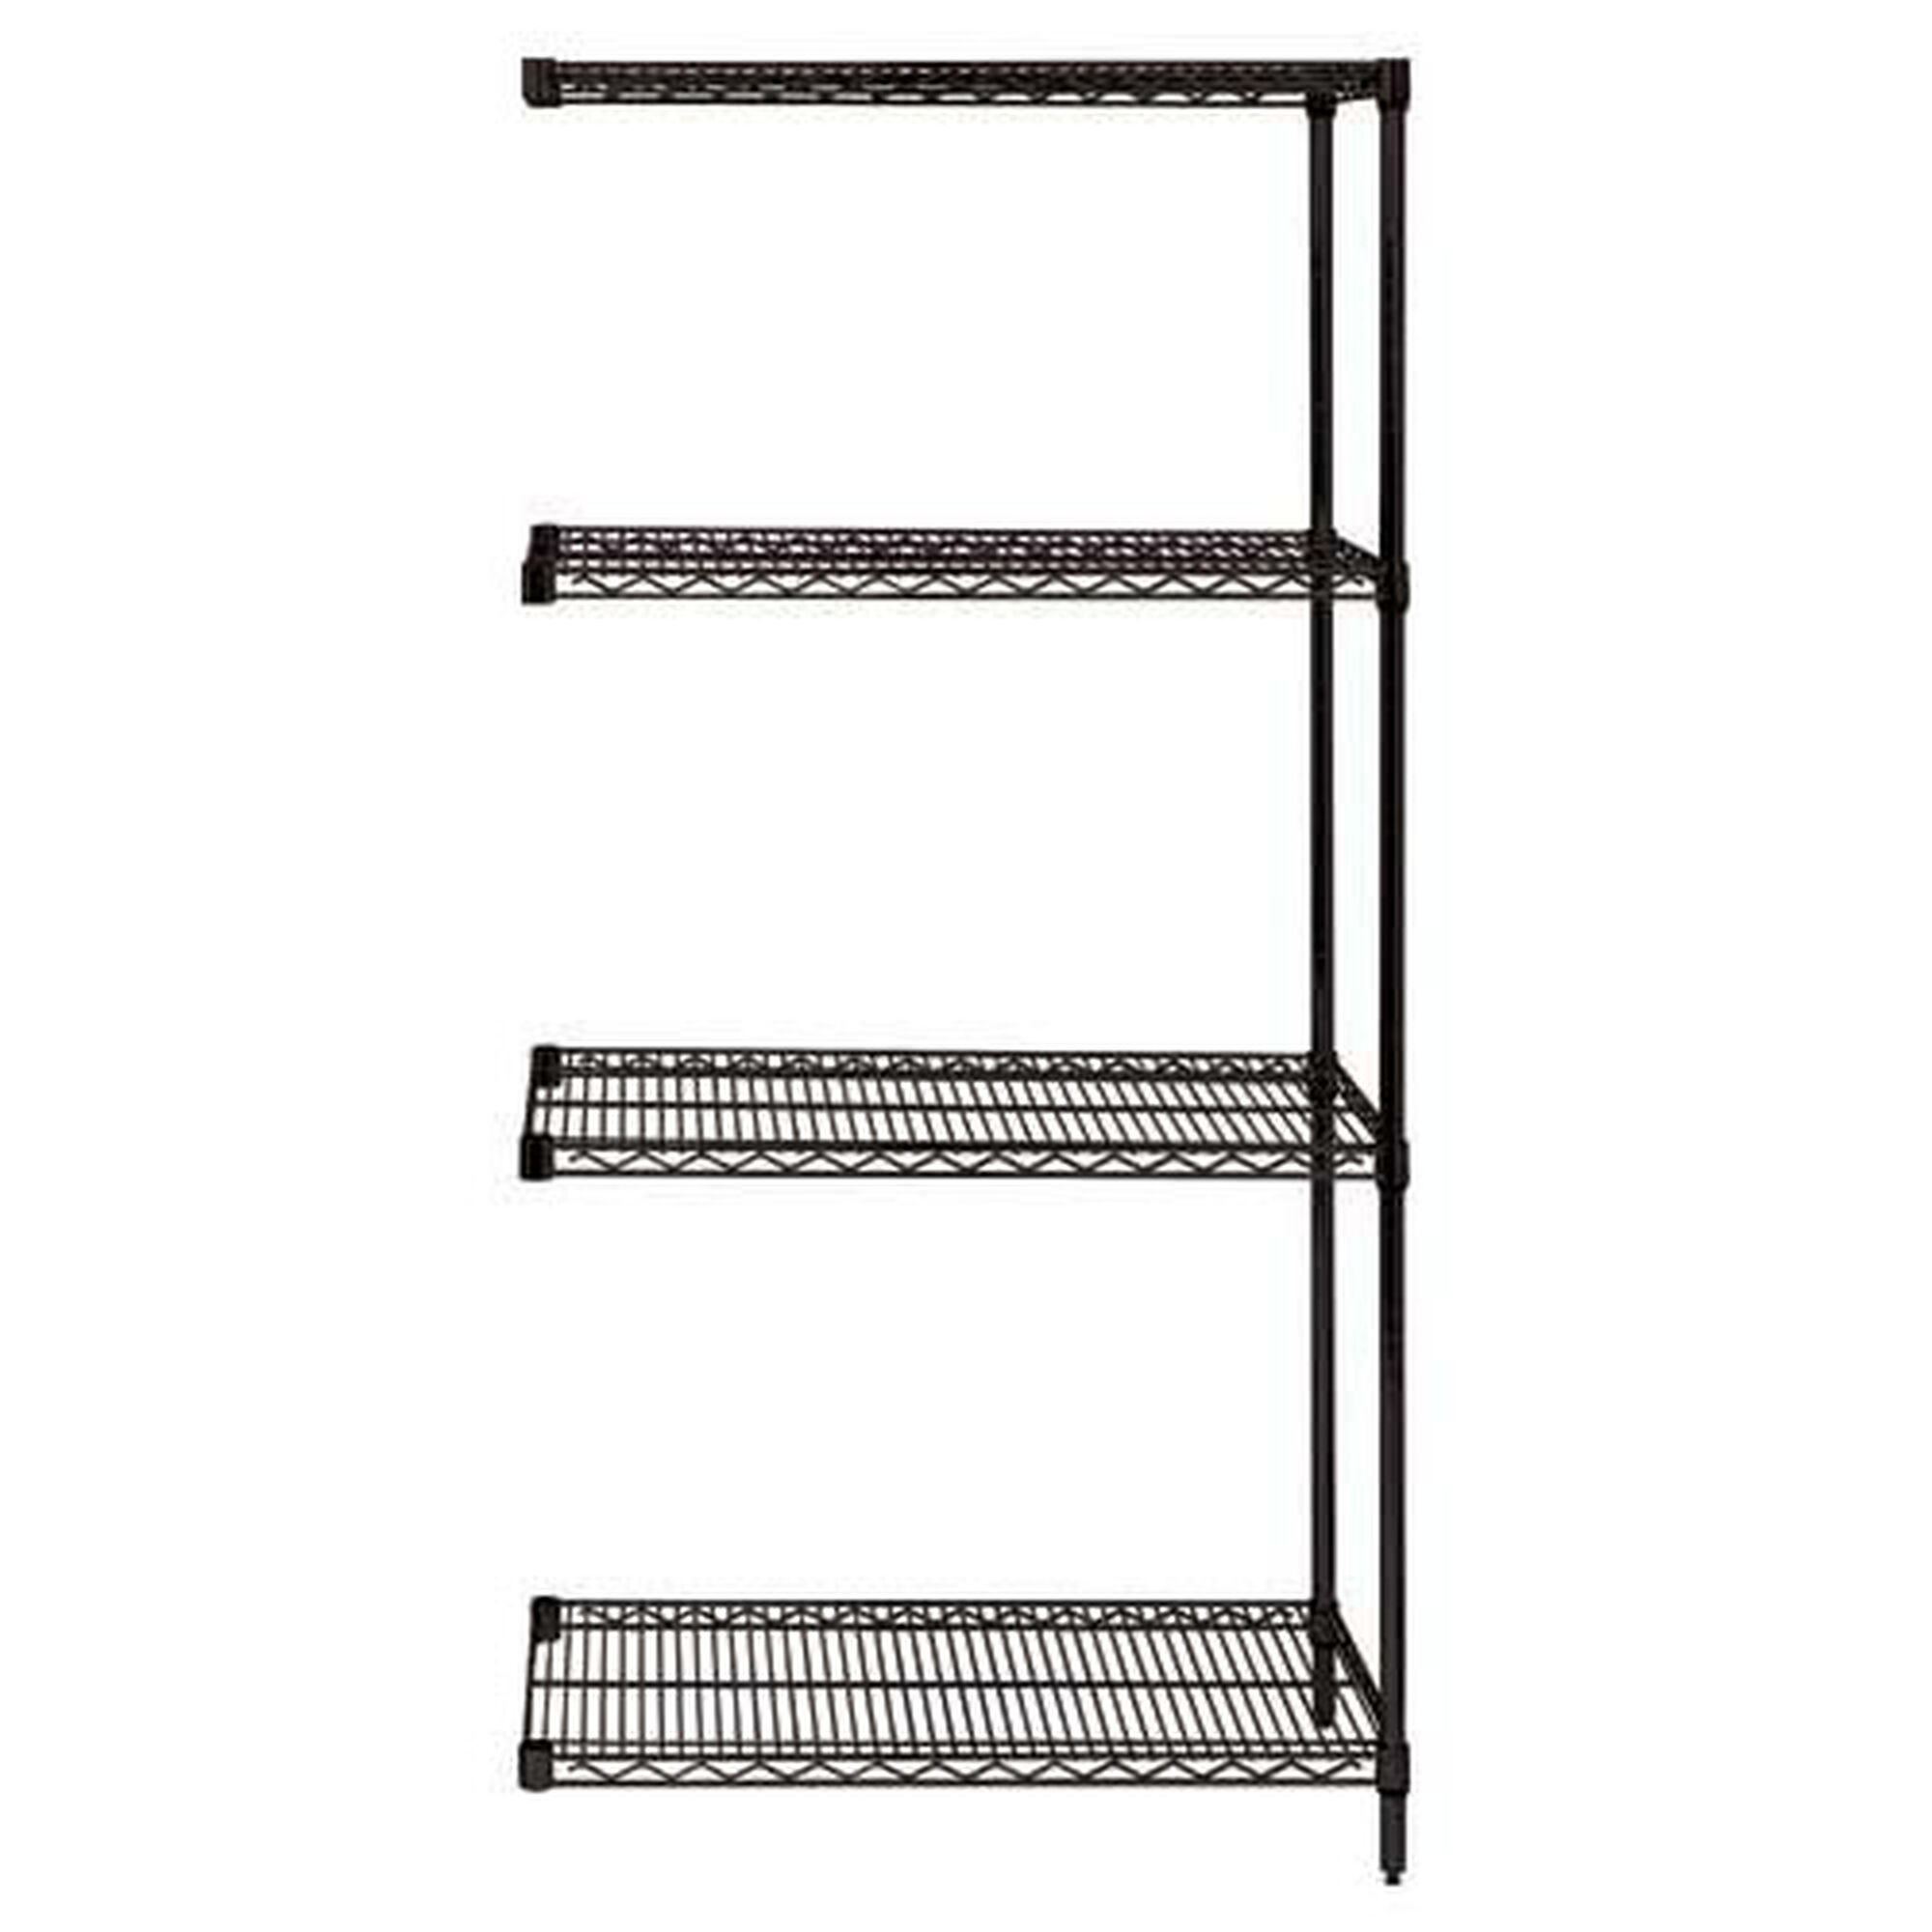 Our Black Wire Shelving 4-Shelf Add-On Units 18